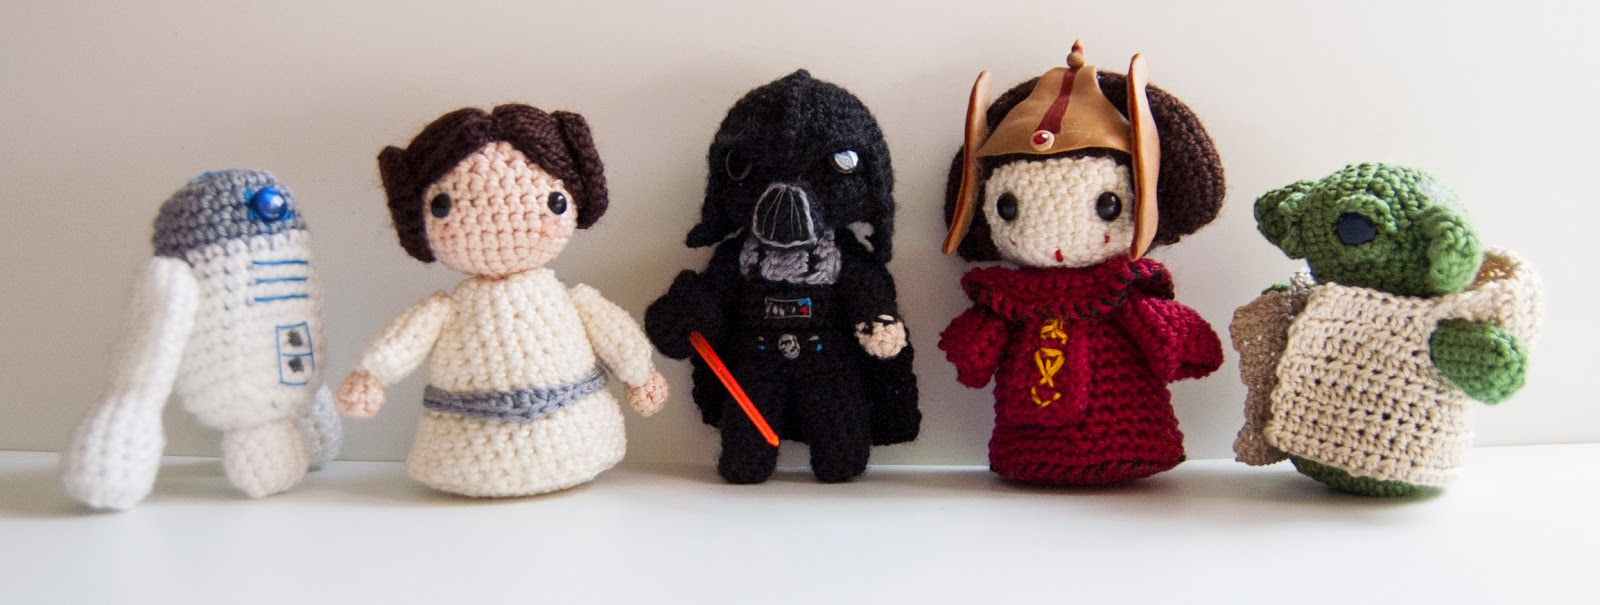 Amigurumi Sewing Machine Pattern : Reino Alfiler: Amigurumis saga star wars